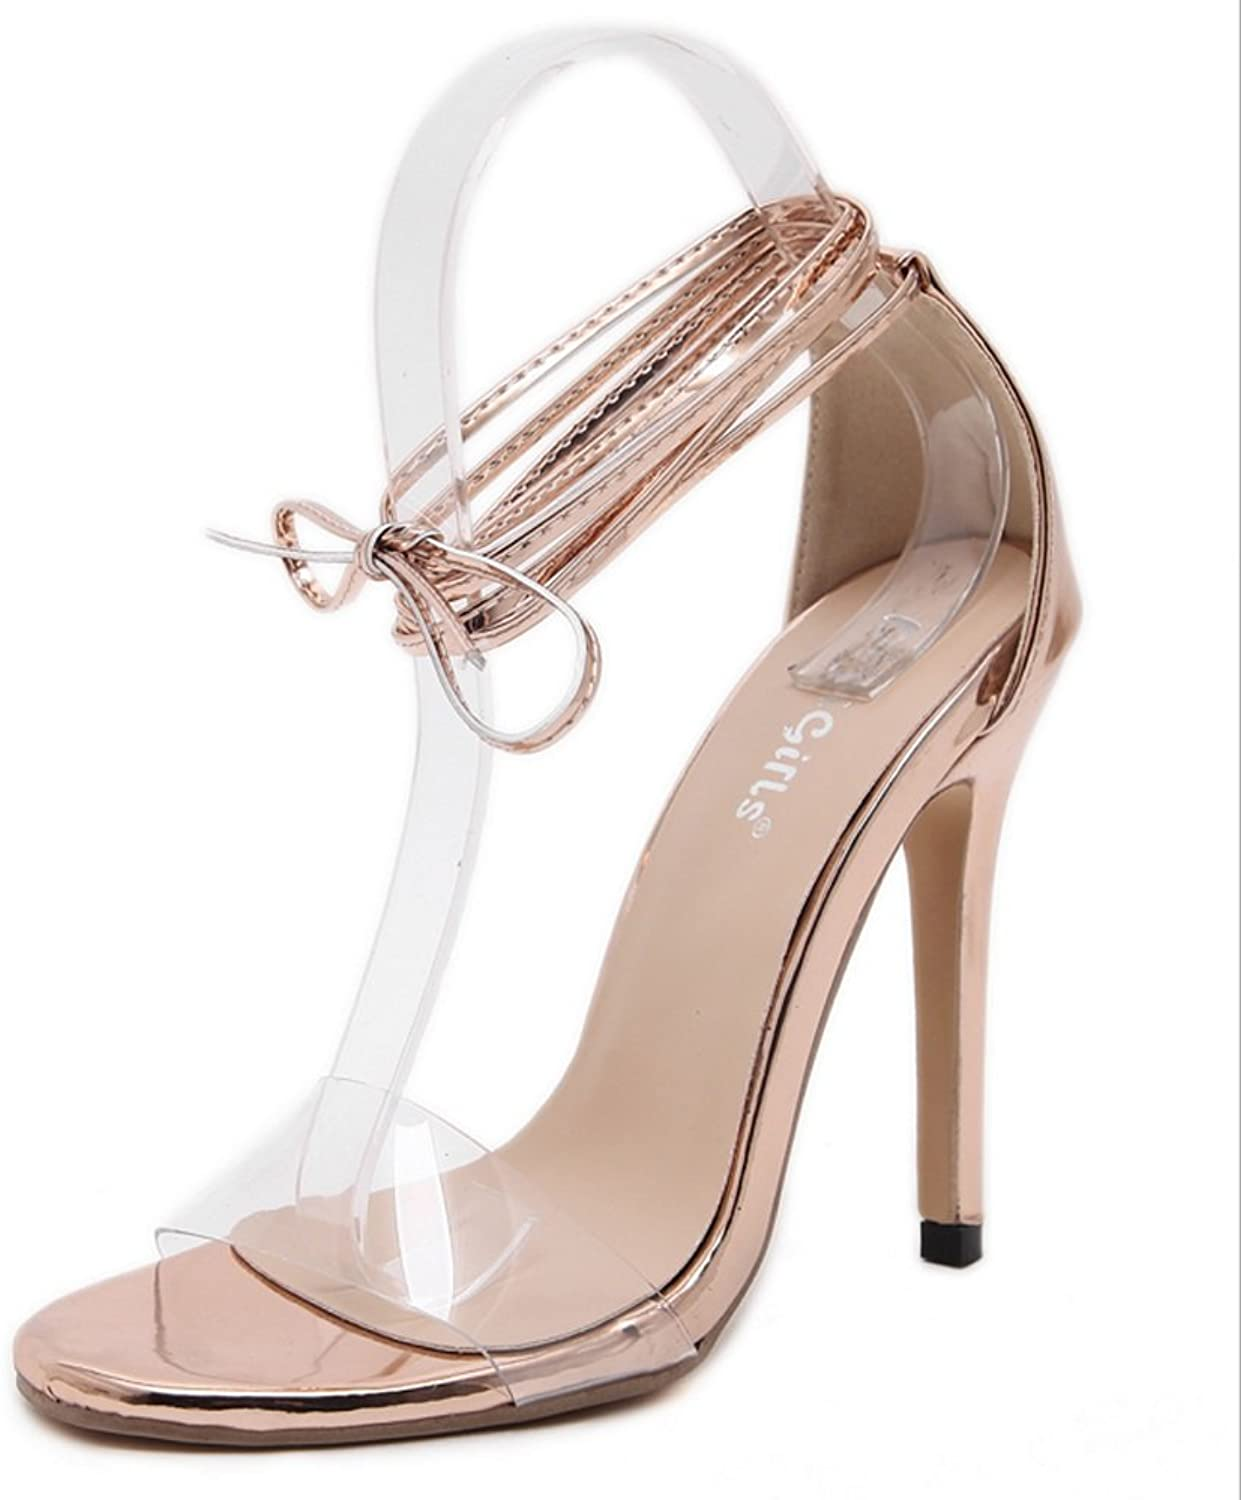 LZWSMGS Women's shoes PVC Spring and Summer Transparent shoes Thin Sandals Cross Straps Heel Block Toe Buckle Casual Dress Party Dinner Champagne 35-40cm Ladies Sandals